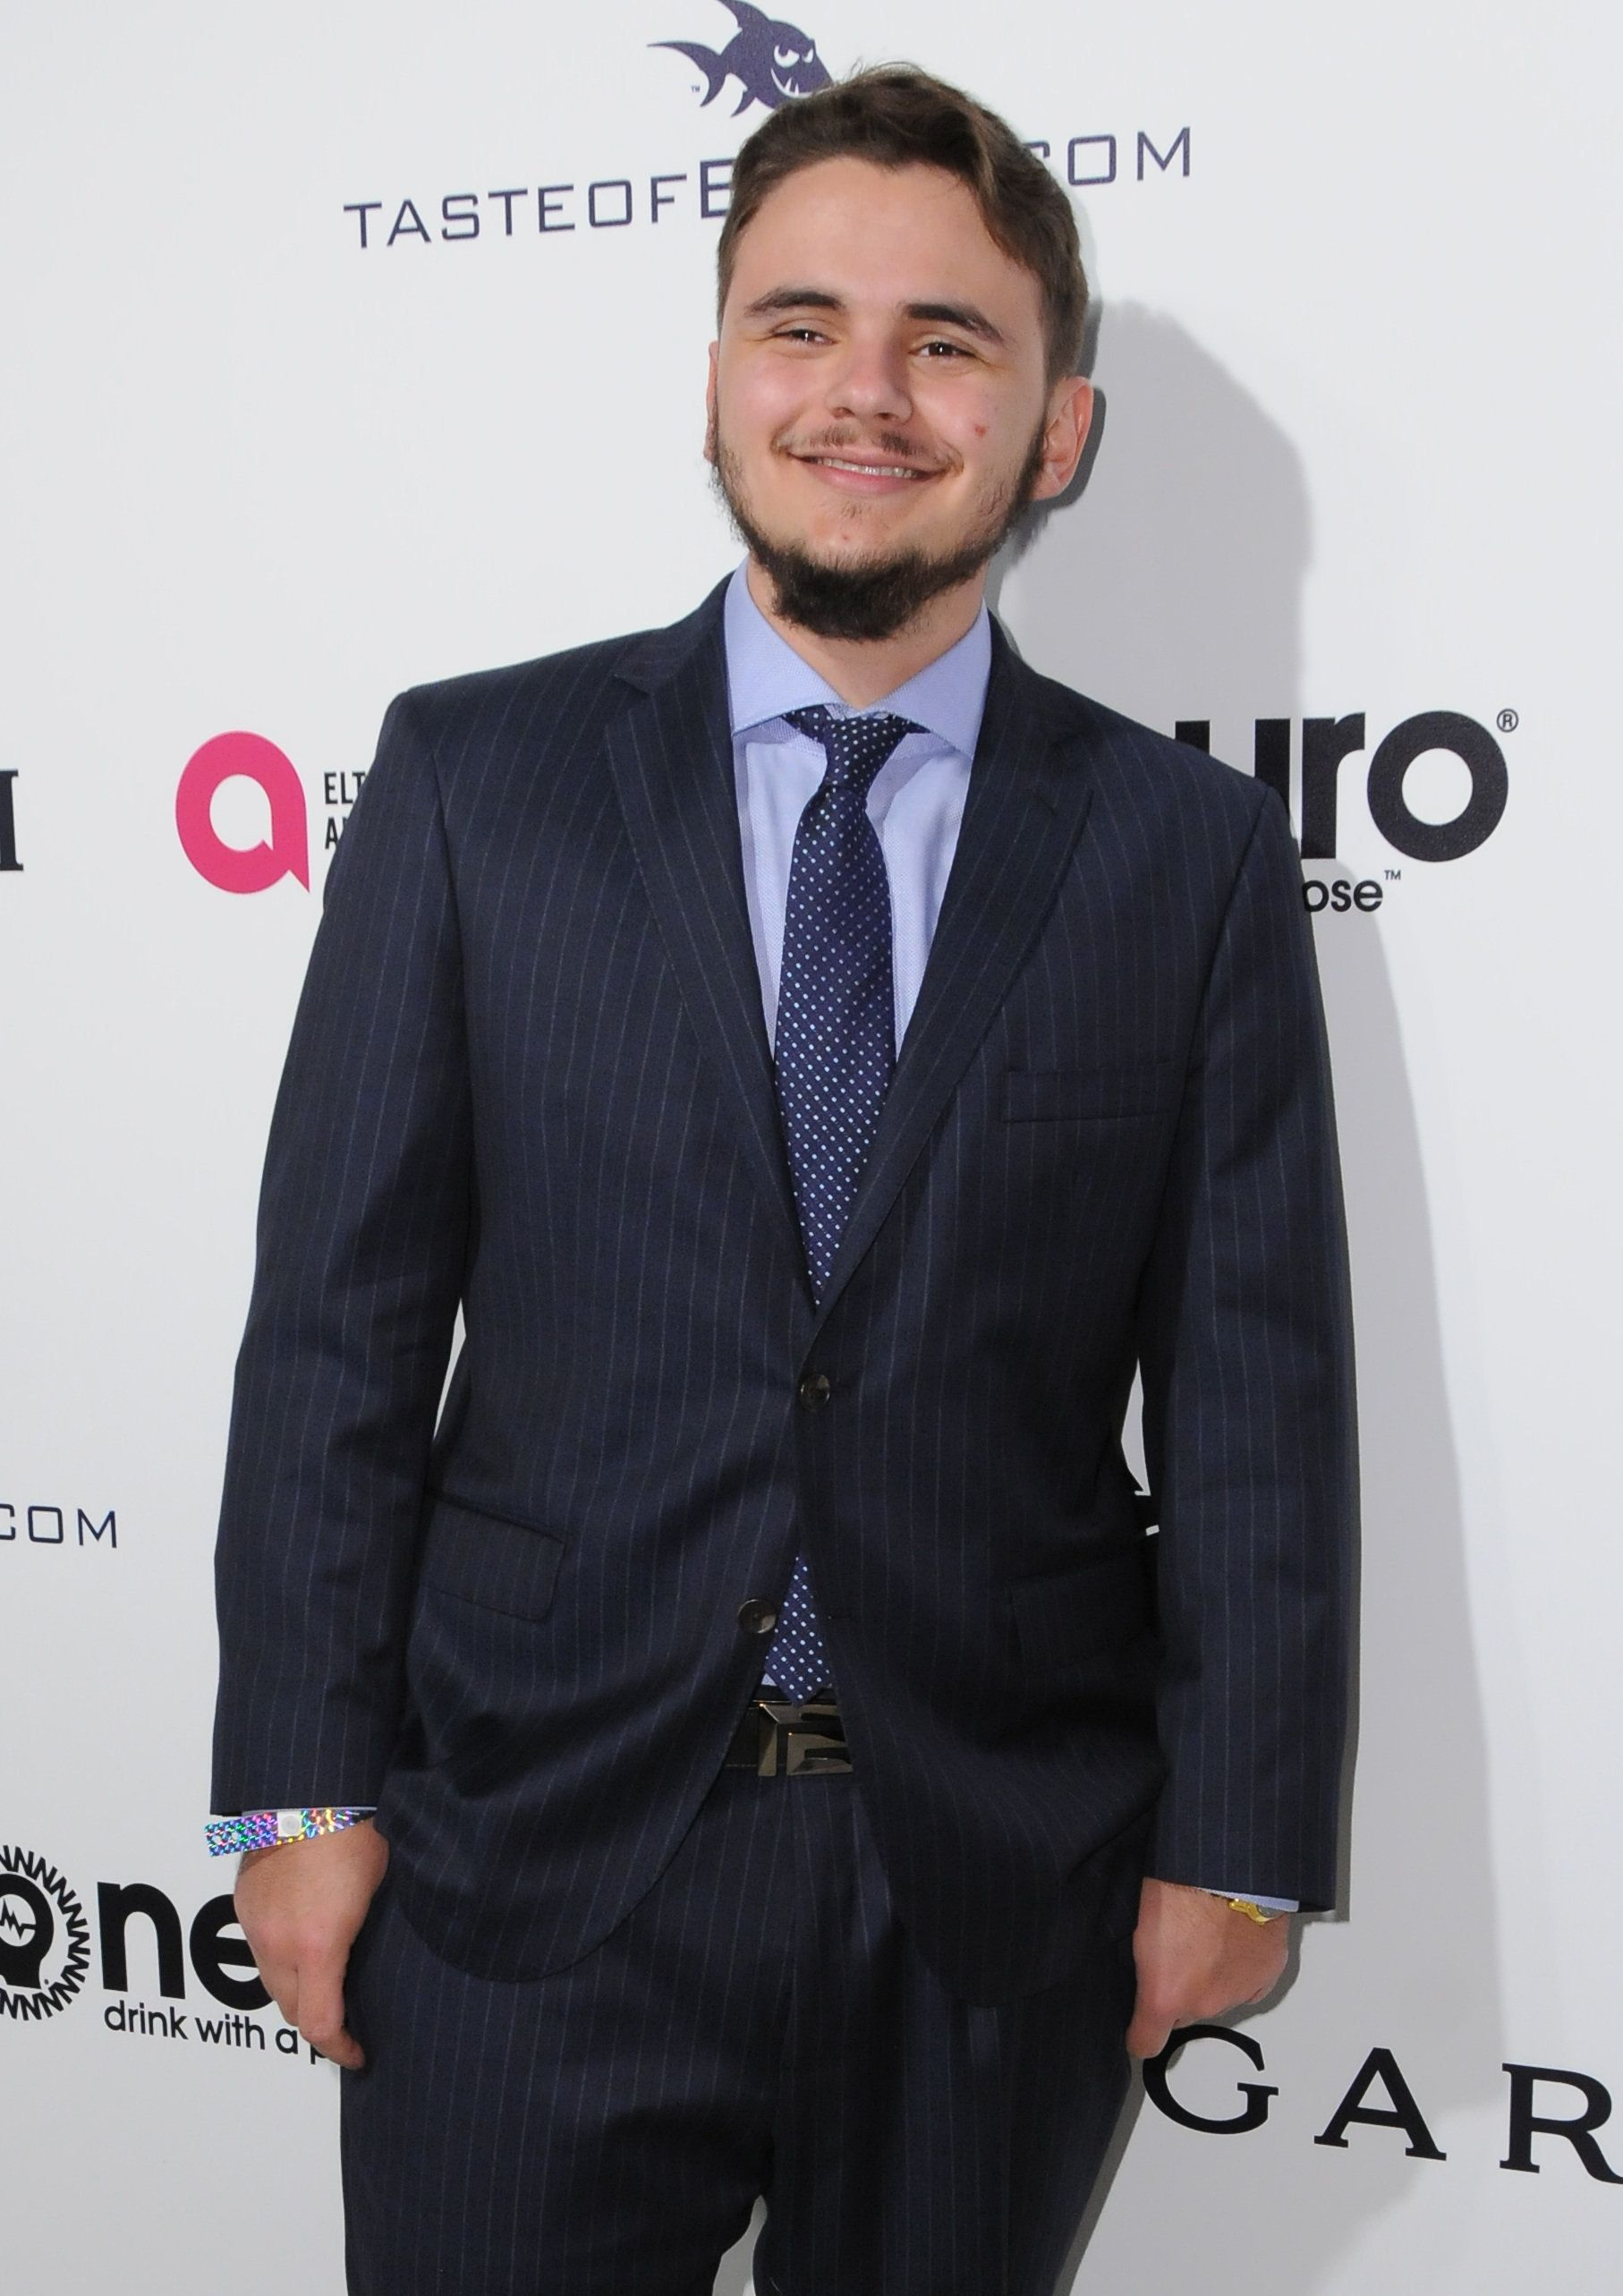 Prince Jackson Unveils Tattoo Tribute To His